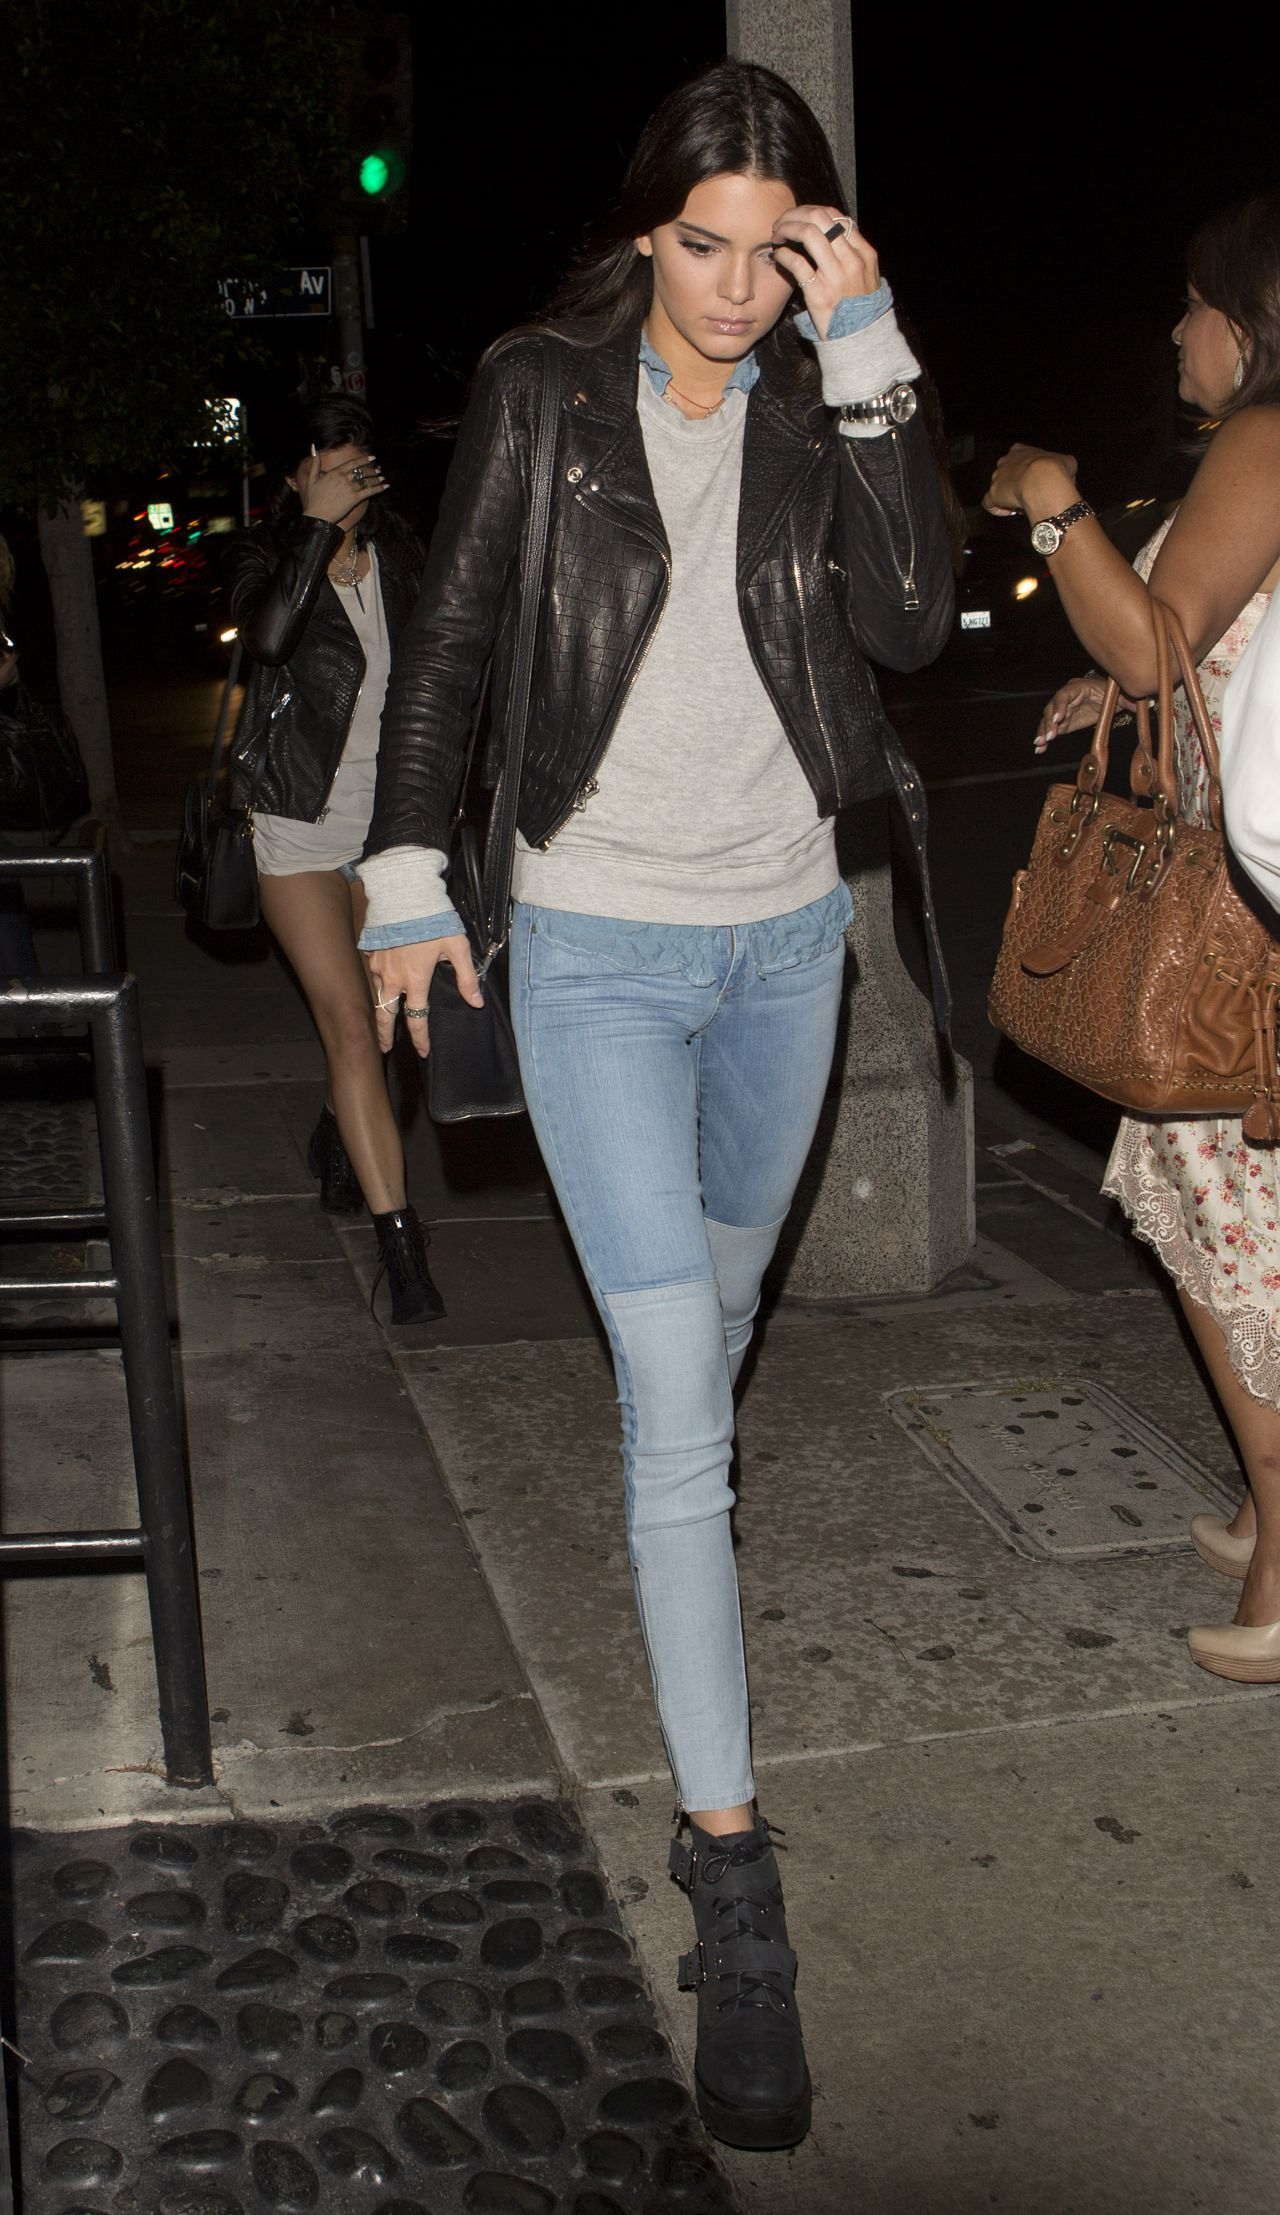 Kendall Jenner Night Out Style  STK Restaurant in West